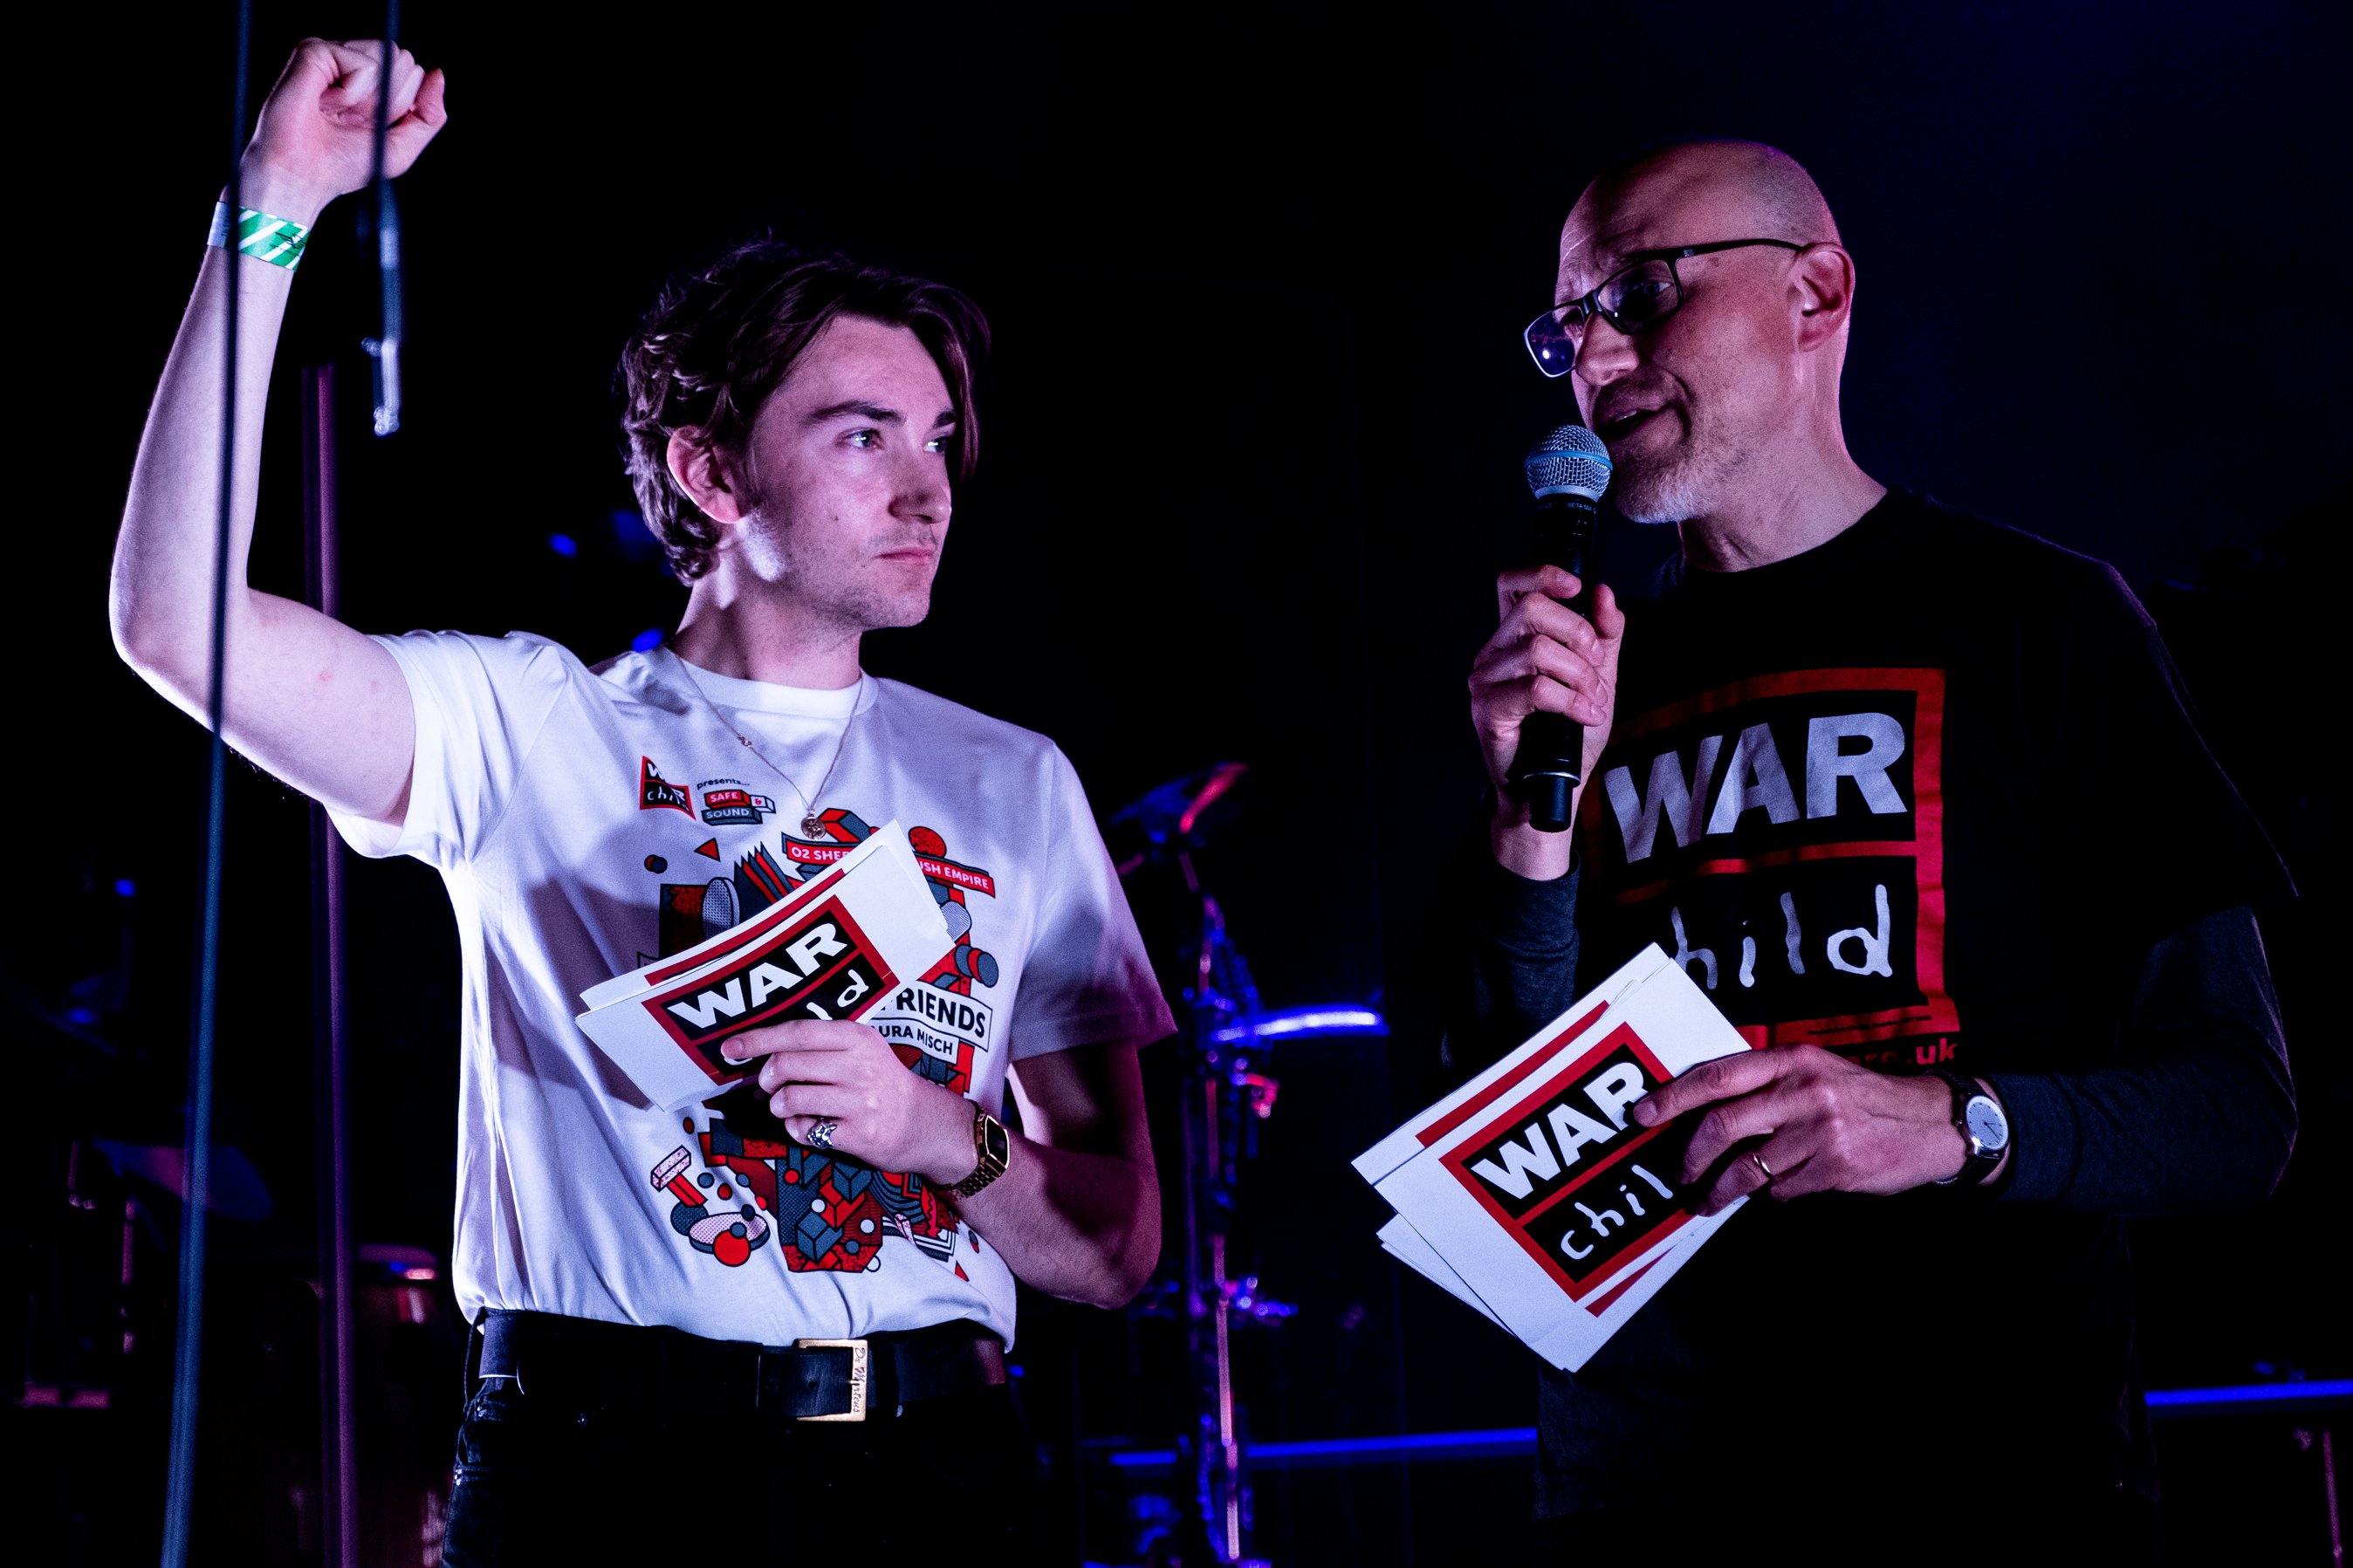 Jack Wood of Radio X Talking to the crowd about War Child live a